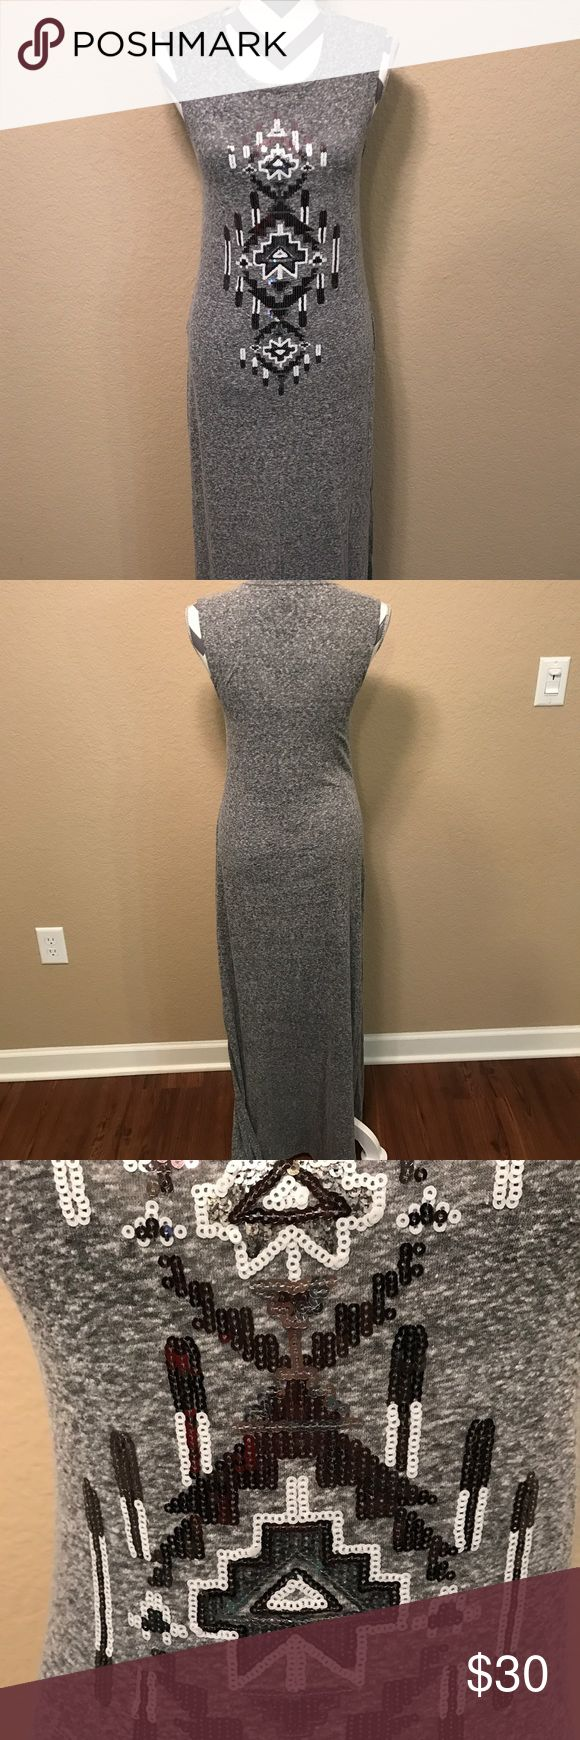 Express Sequin Maxi Dress sz. S Sz. S, Maxi length with side slits, heather grey knit with sequin Aztec design in black, grey and white. Worn a few times, like new condition Express Dresses Maxi